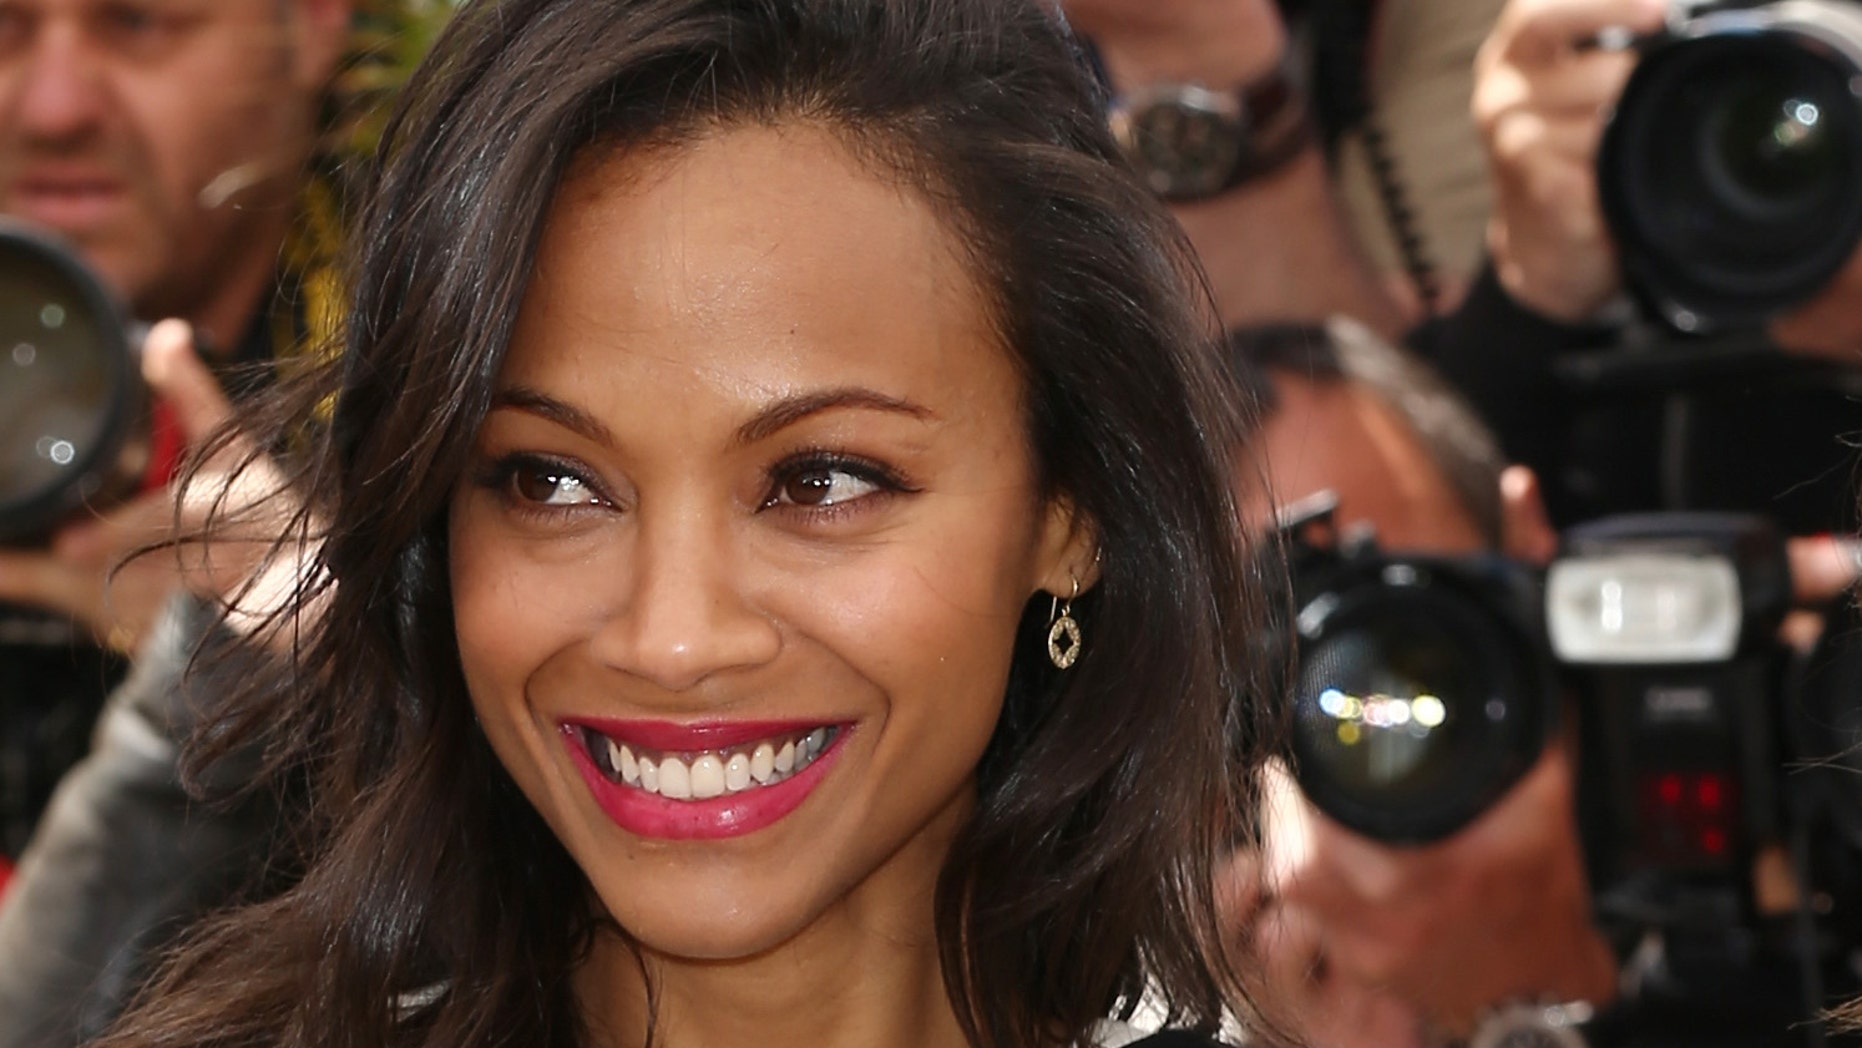 Actress Zoe Saldana attends the photocall for 'Blood Ties' at The 66th Annual Cannes Film Festival on May 20, 2013 in Cannes, France.  (Photo by Andreas Rentz/Getty Images)